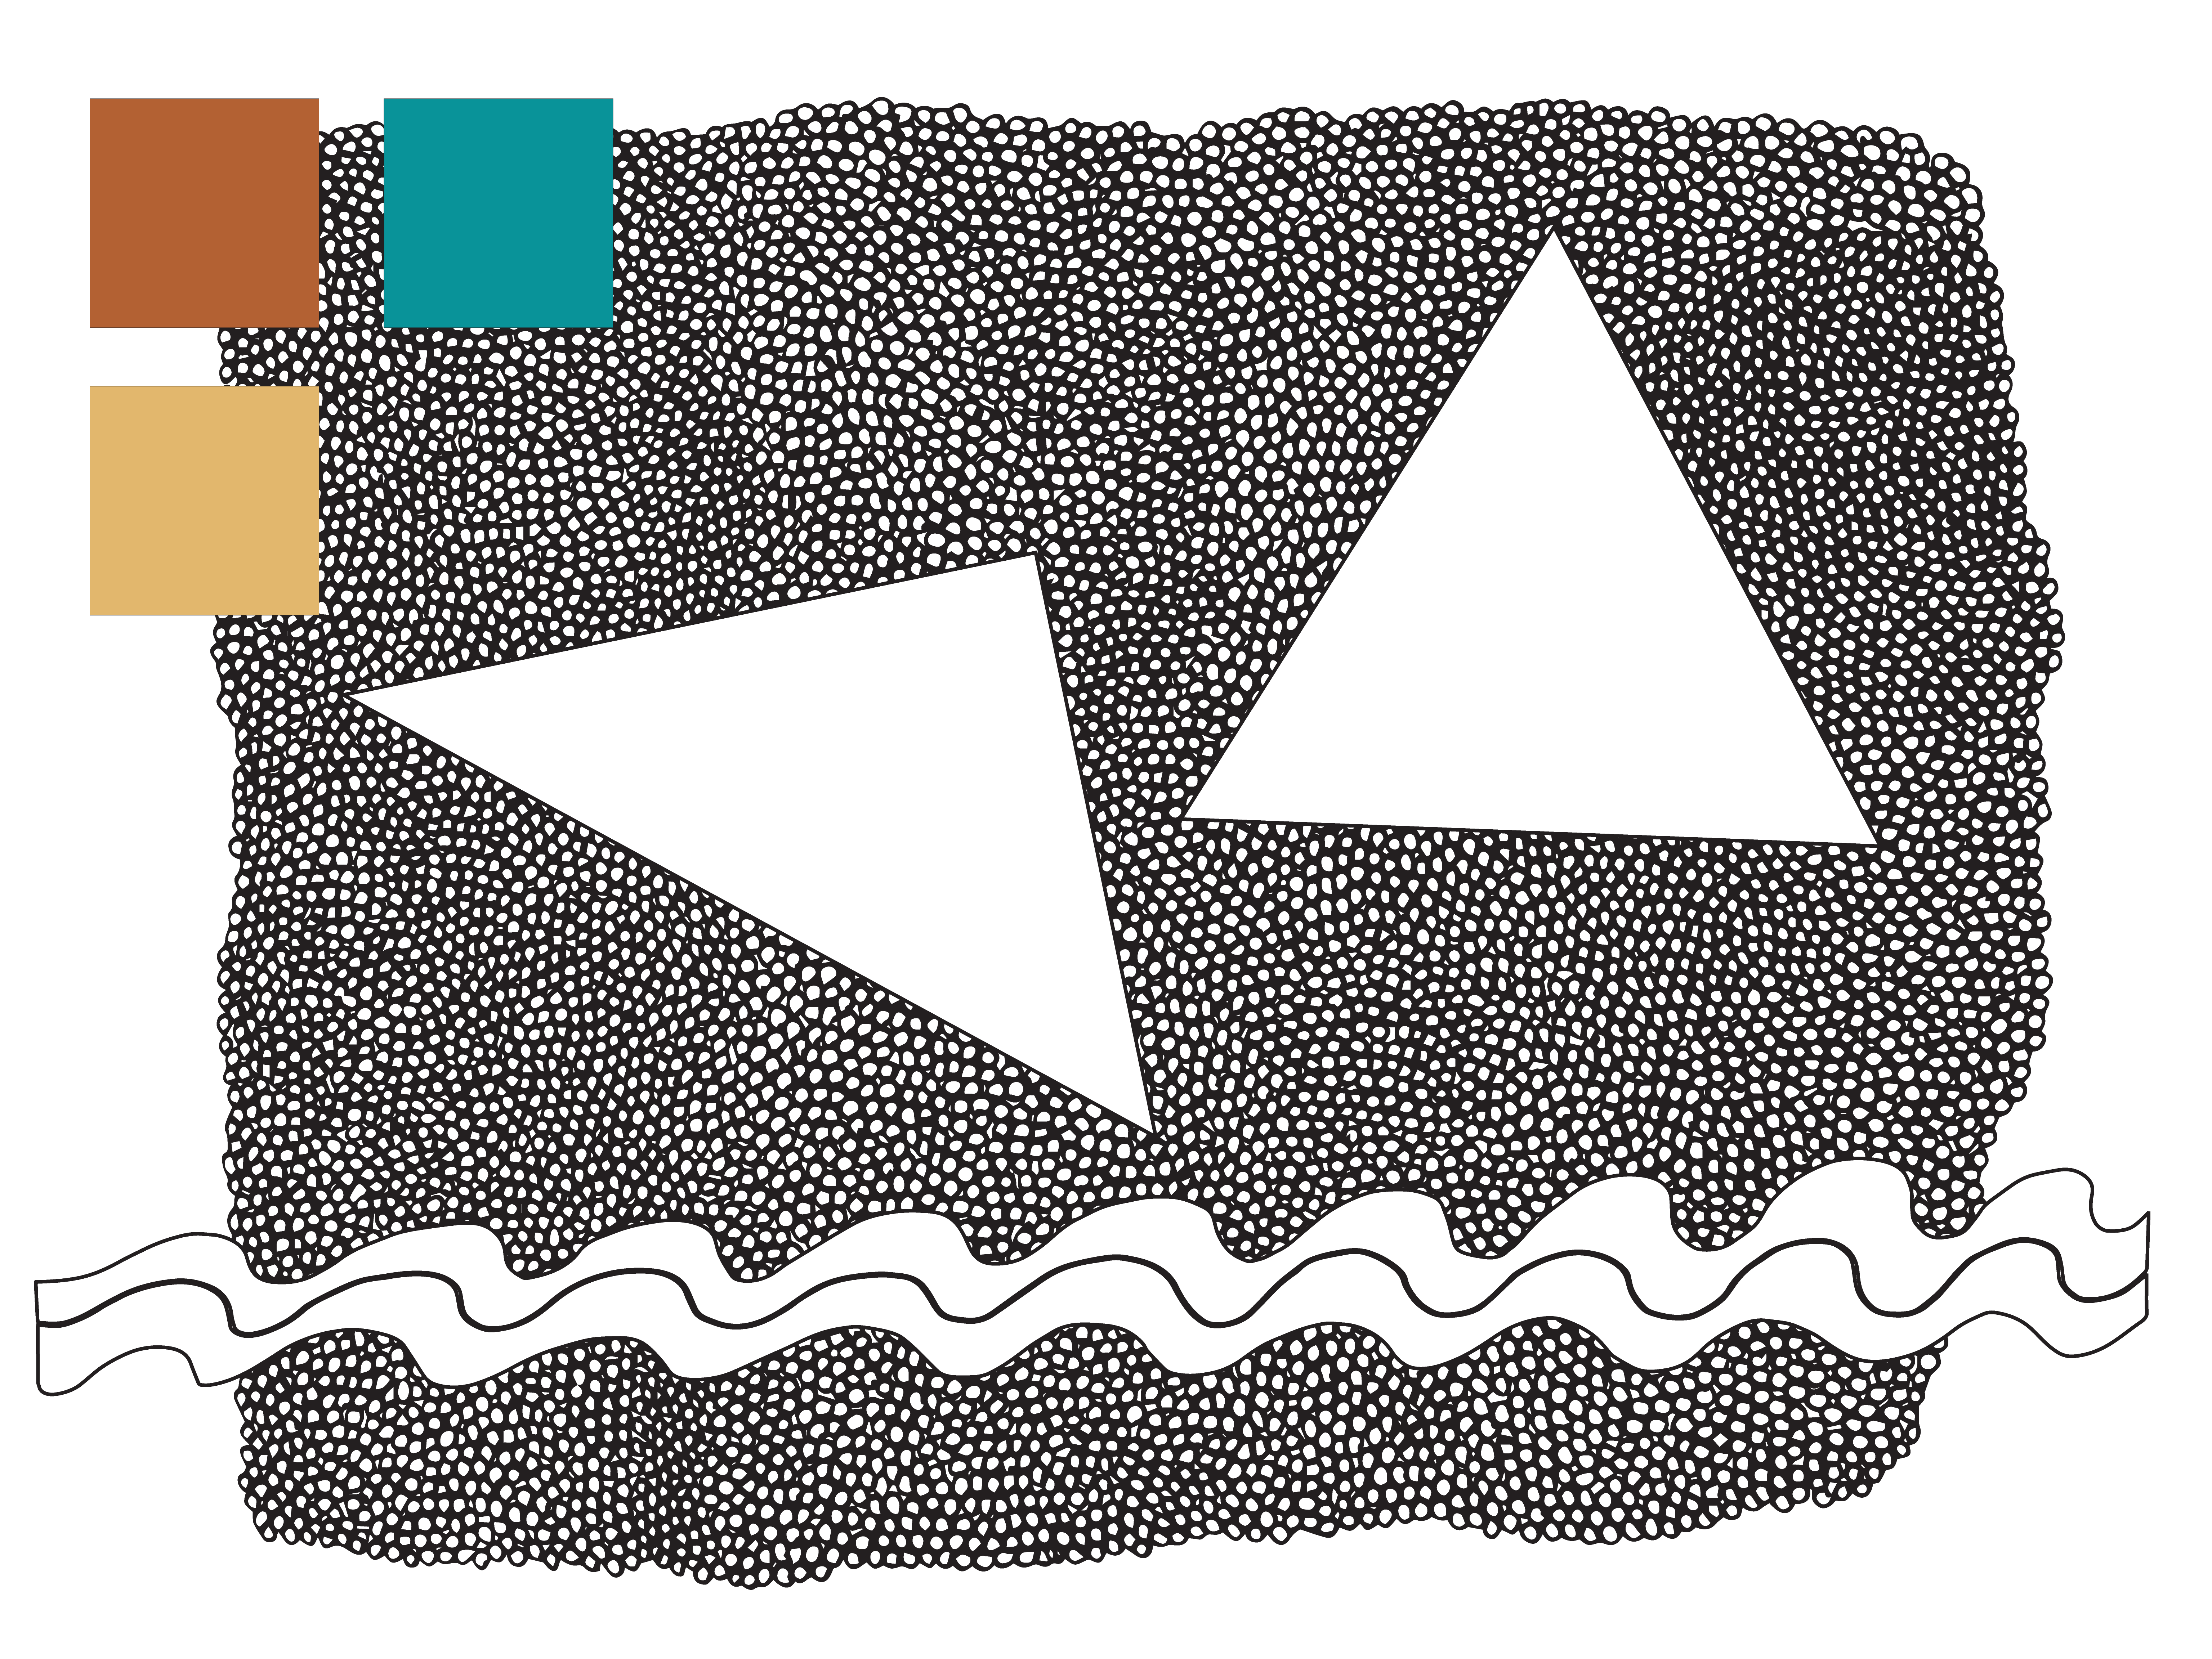 Color palette & motifs for my Waves and Triangles pattern